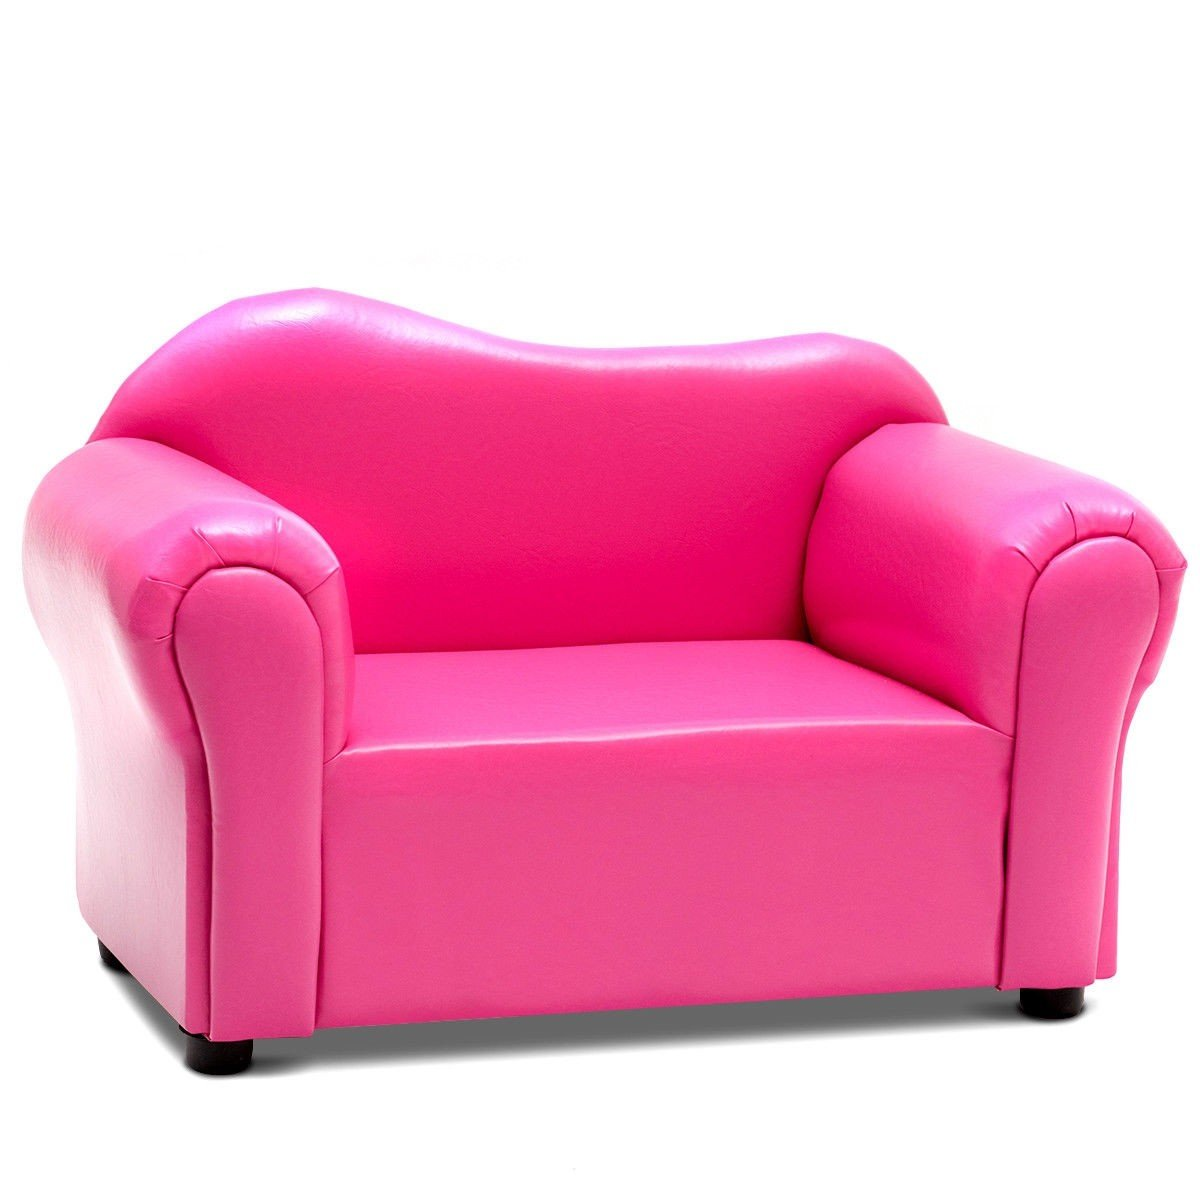 Svitlife Kids Armrest Chair Sofa Couch Gift Birthday Home Pink Storage Kid Recliner Seat